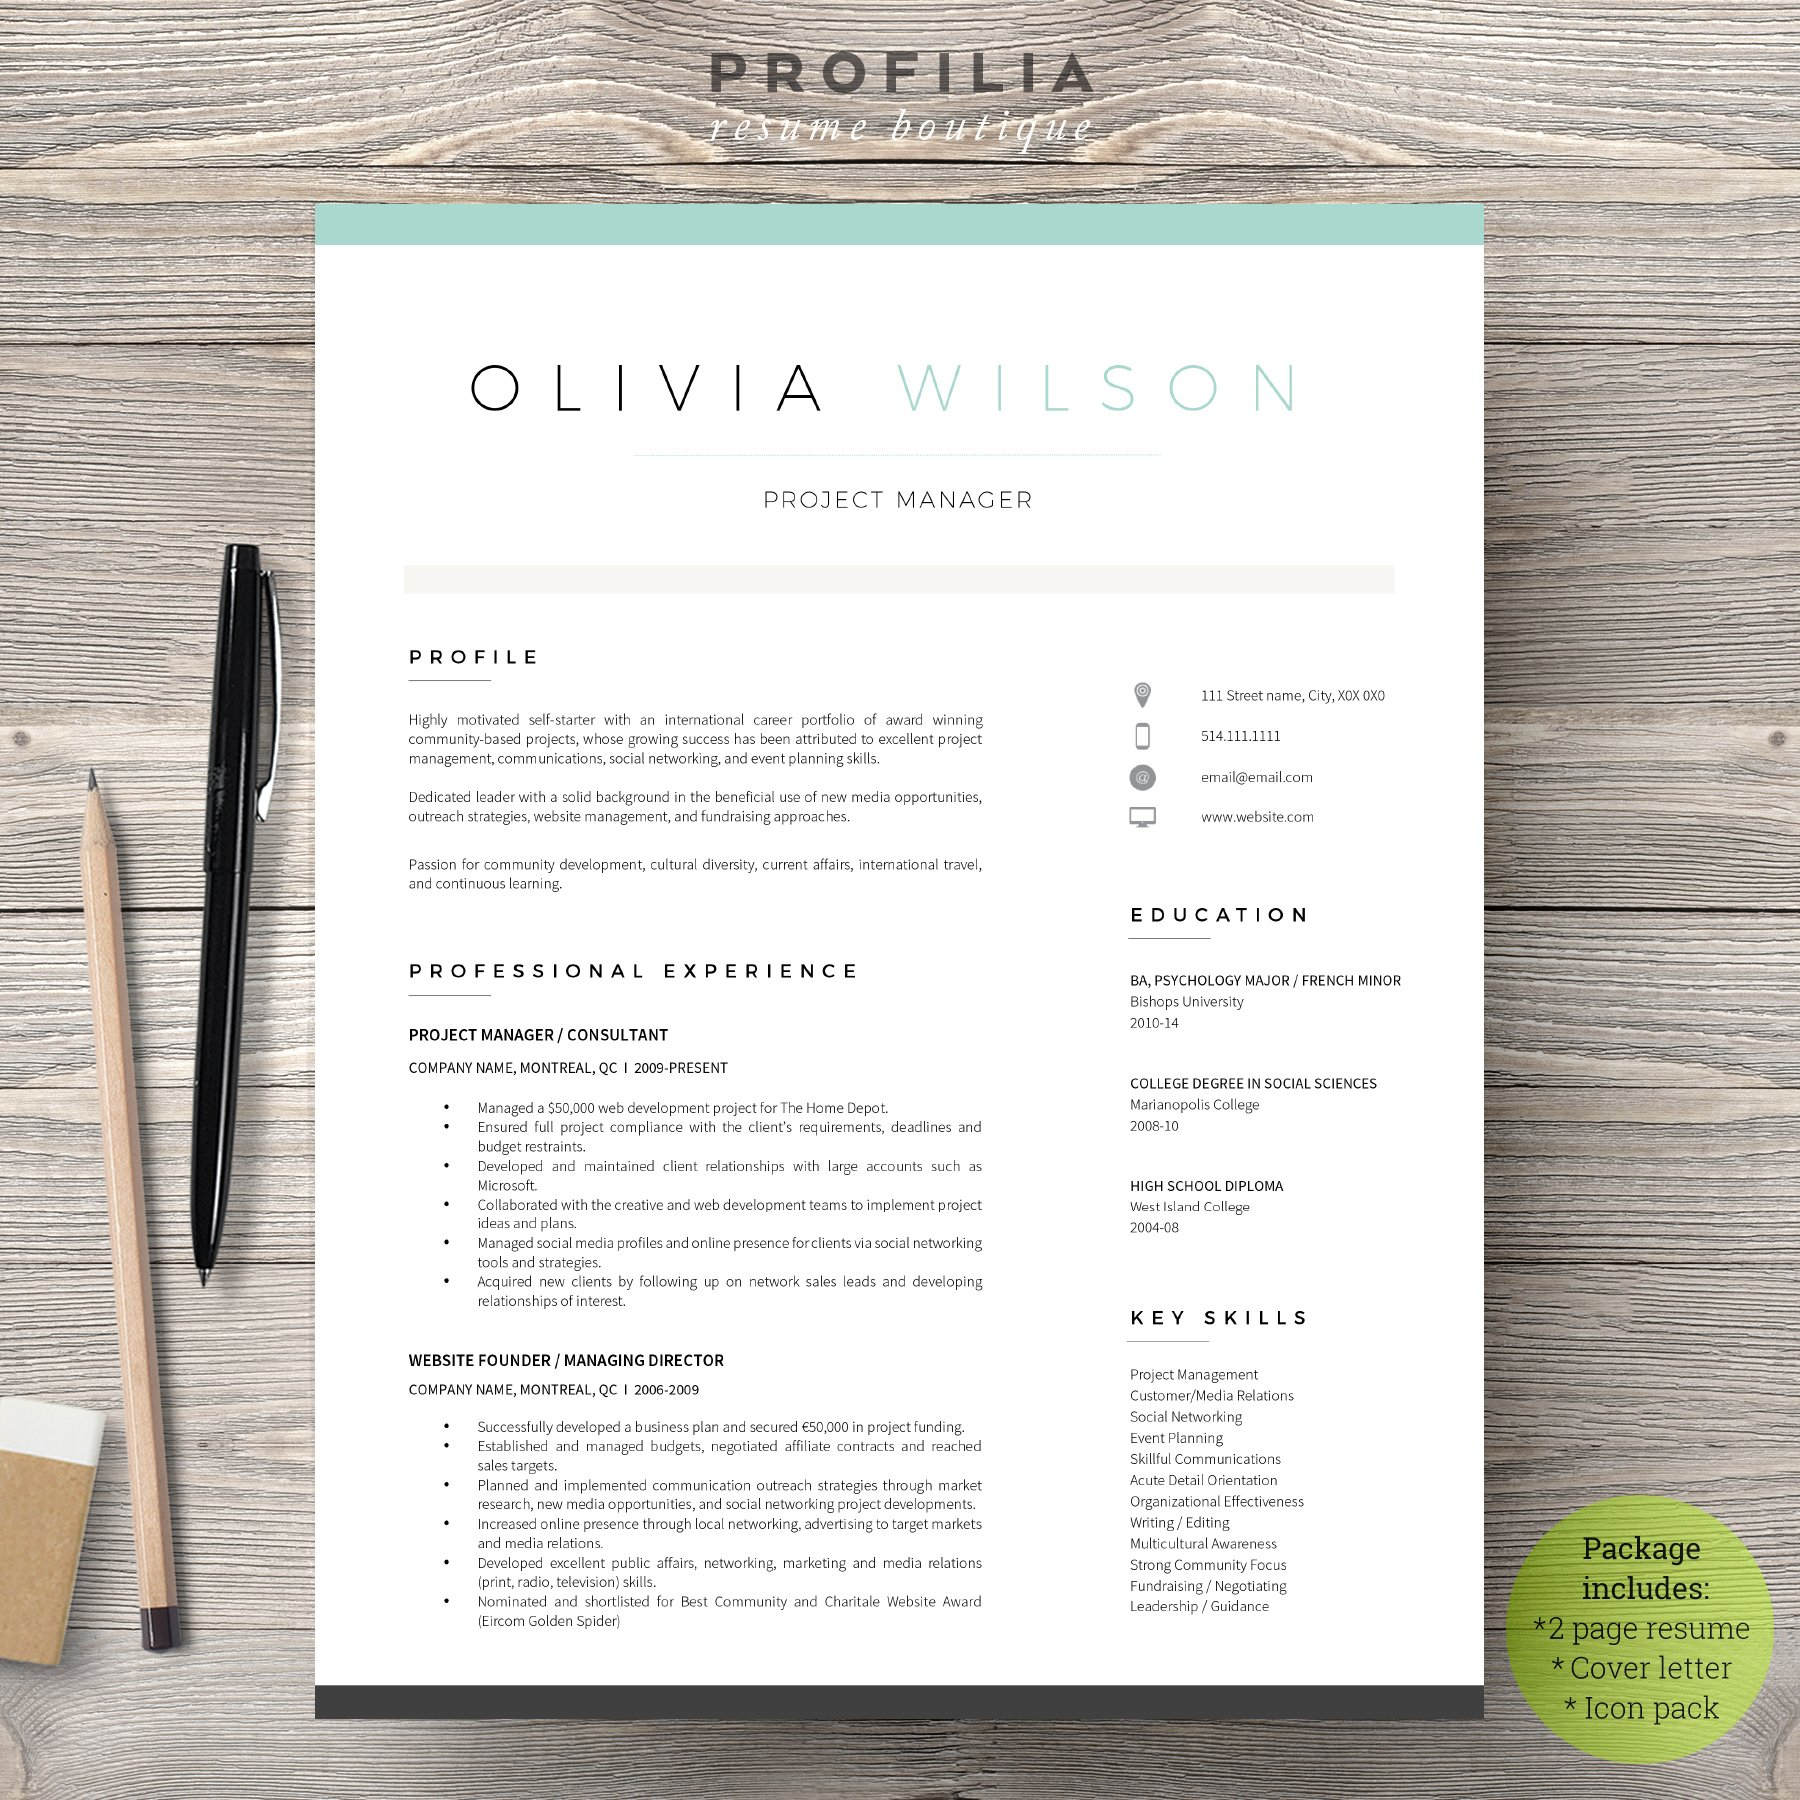 Word resume cover letter template resume templates creative market spiritdancerdesigns Choice Image